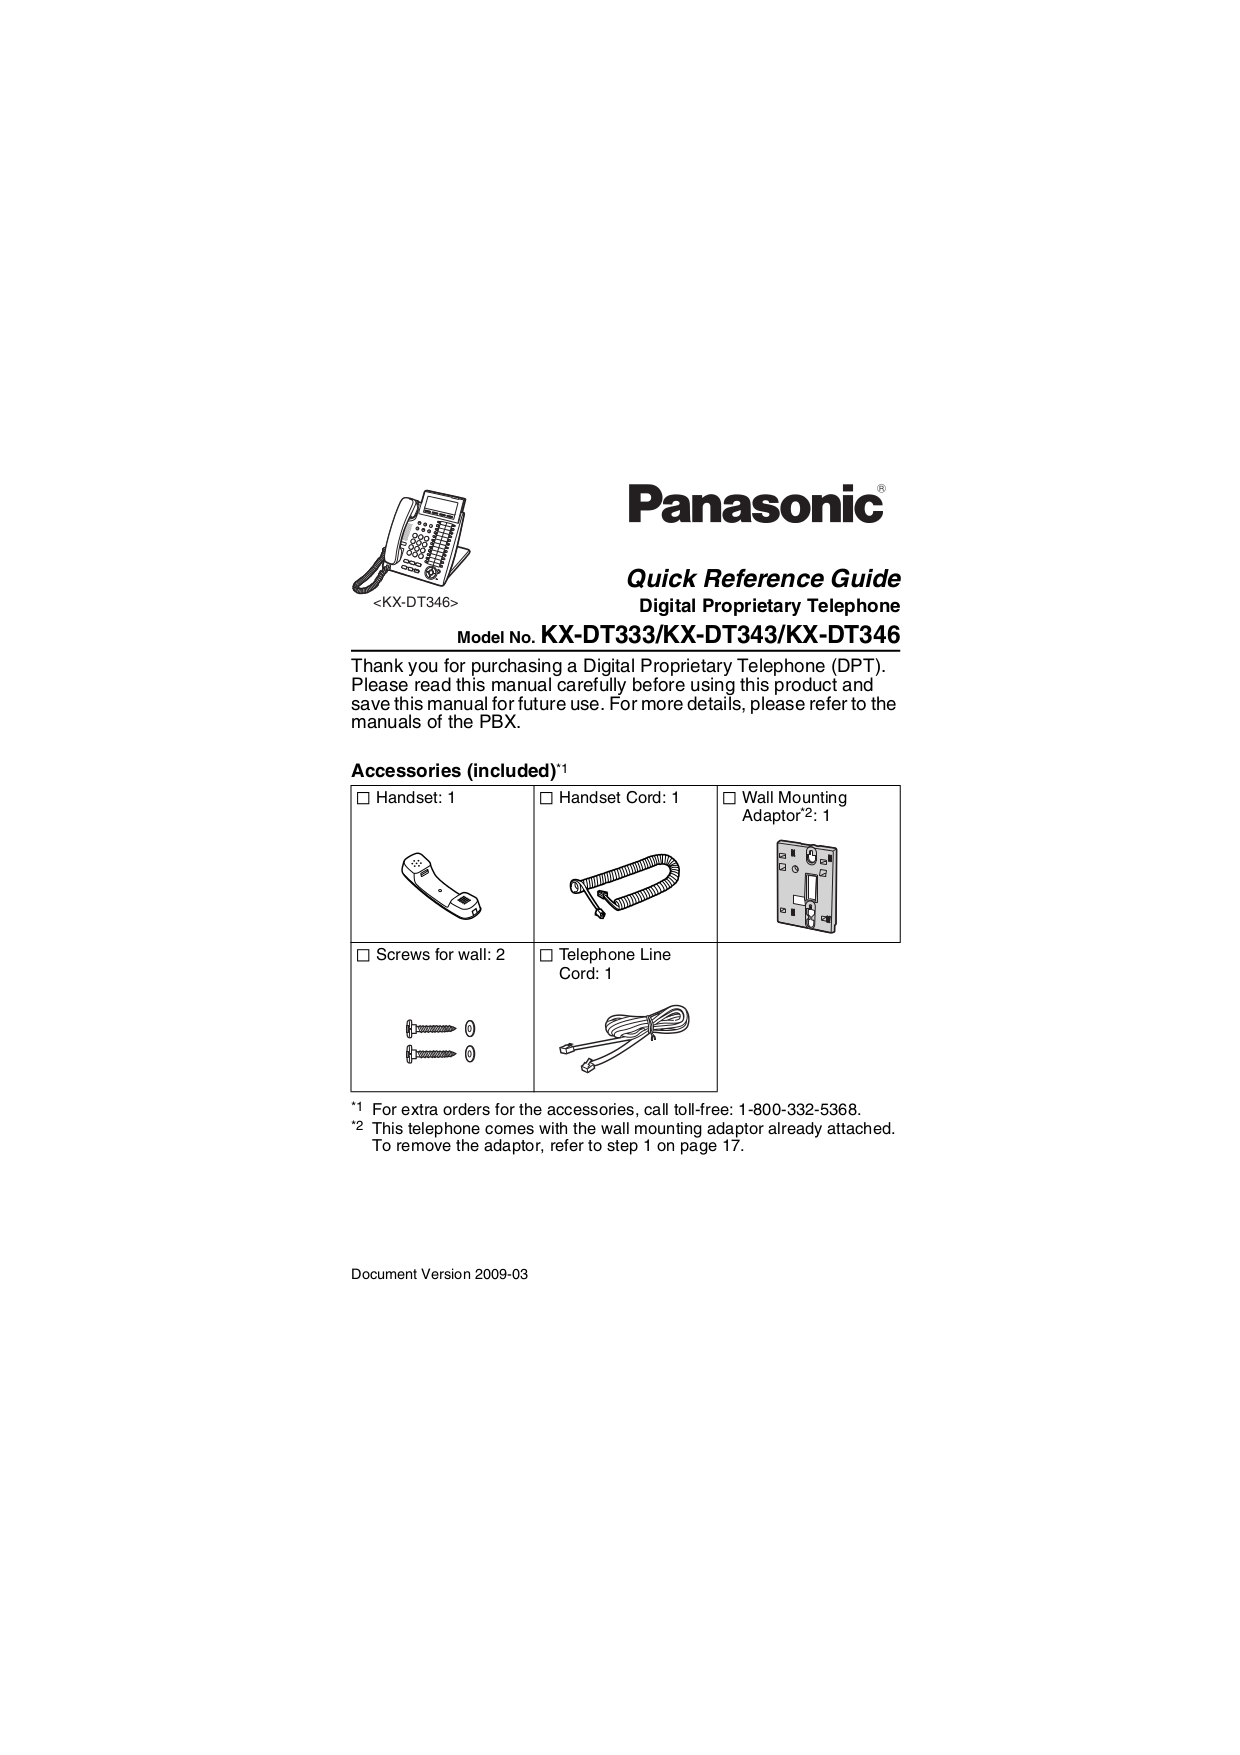 pdf for Panasonic Telephone KX-DT333 manual